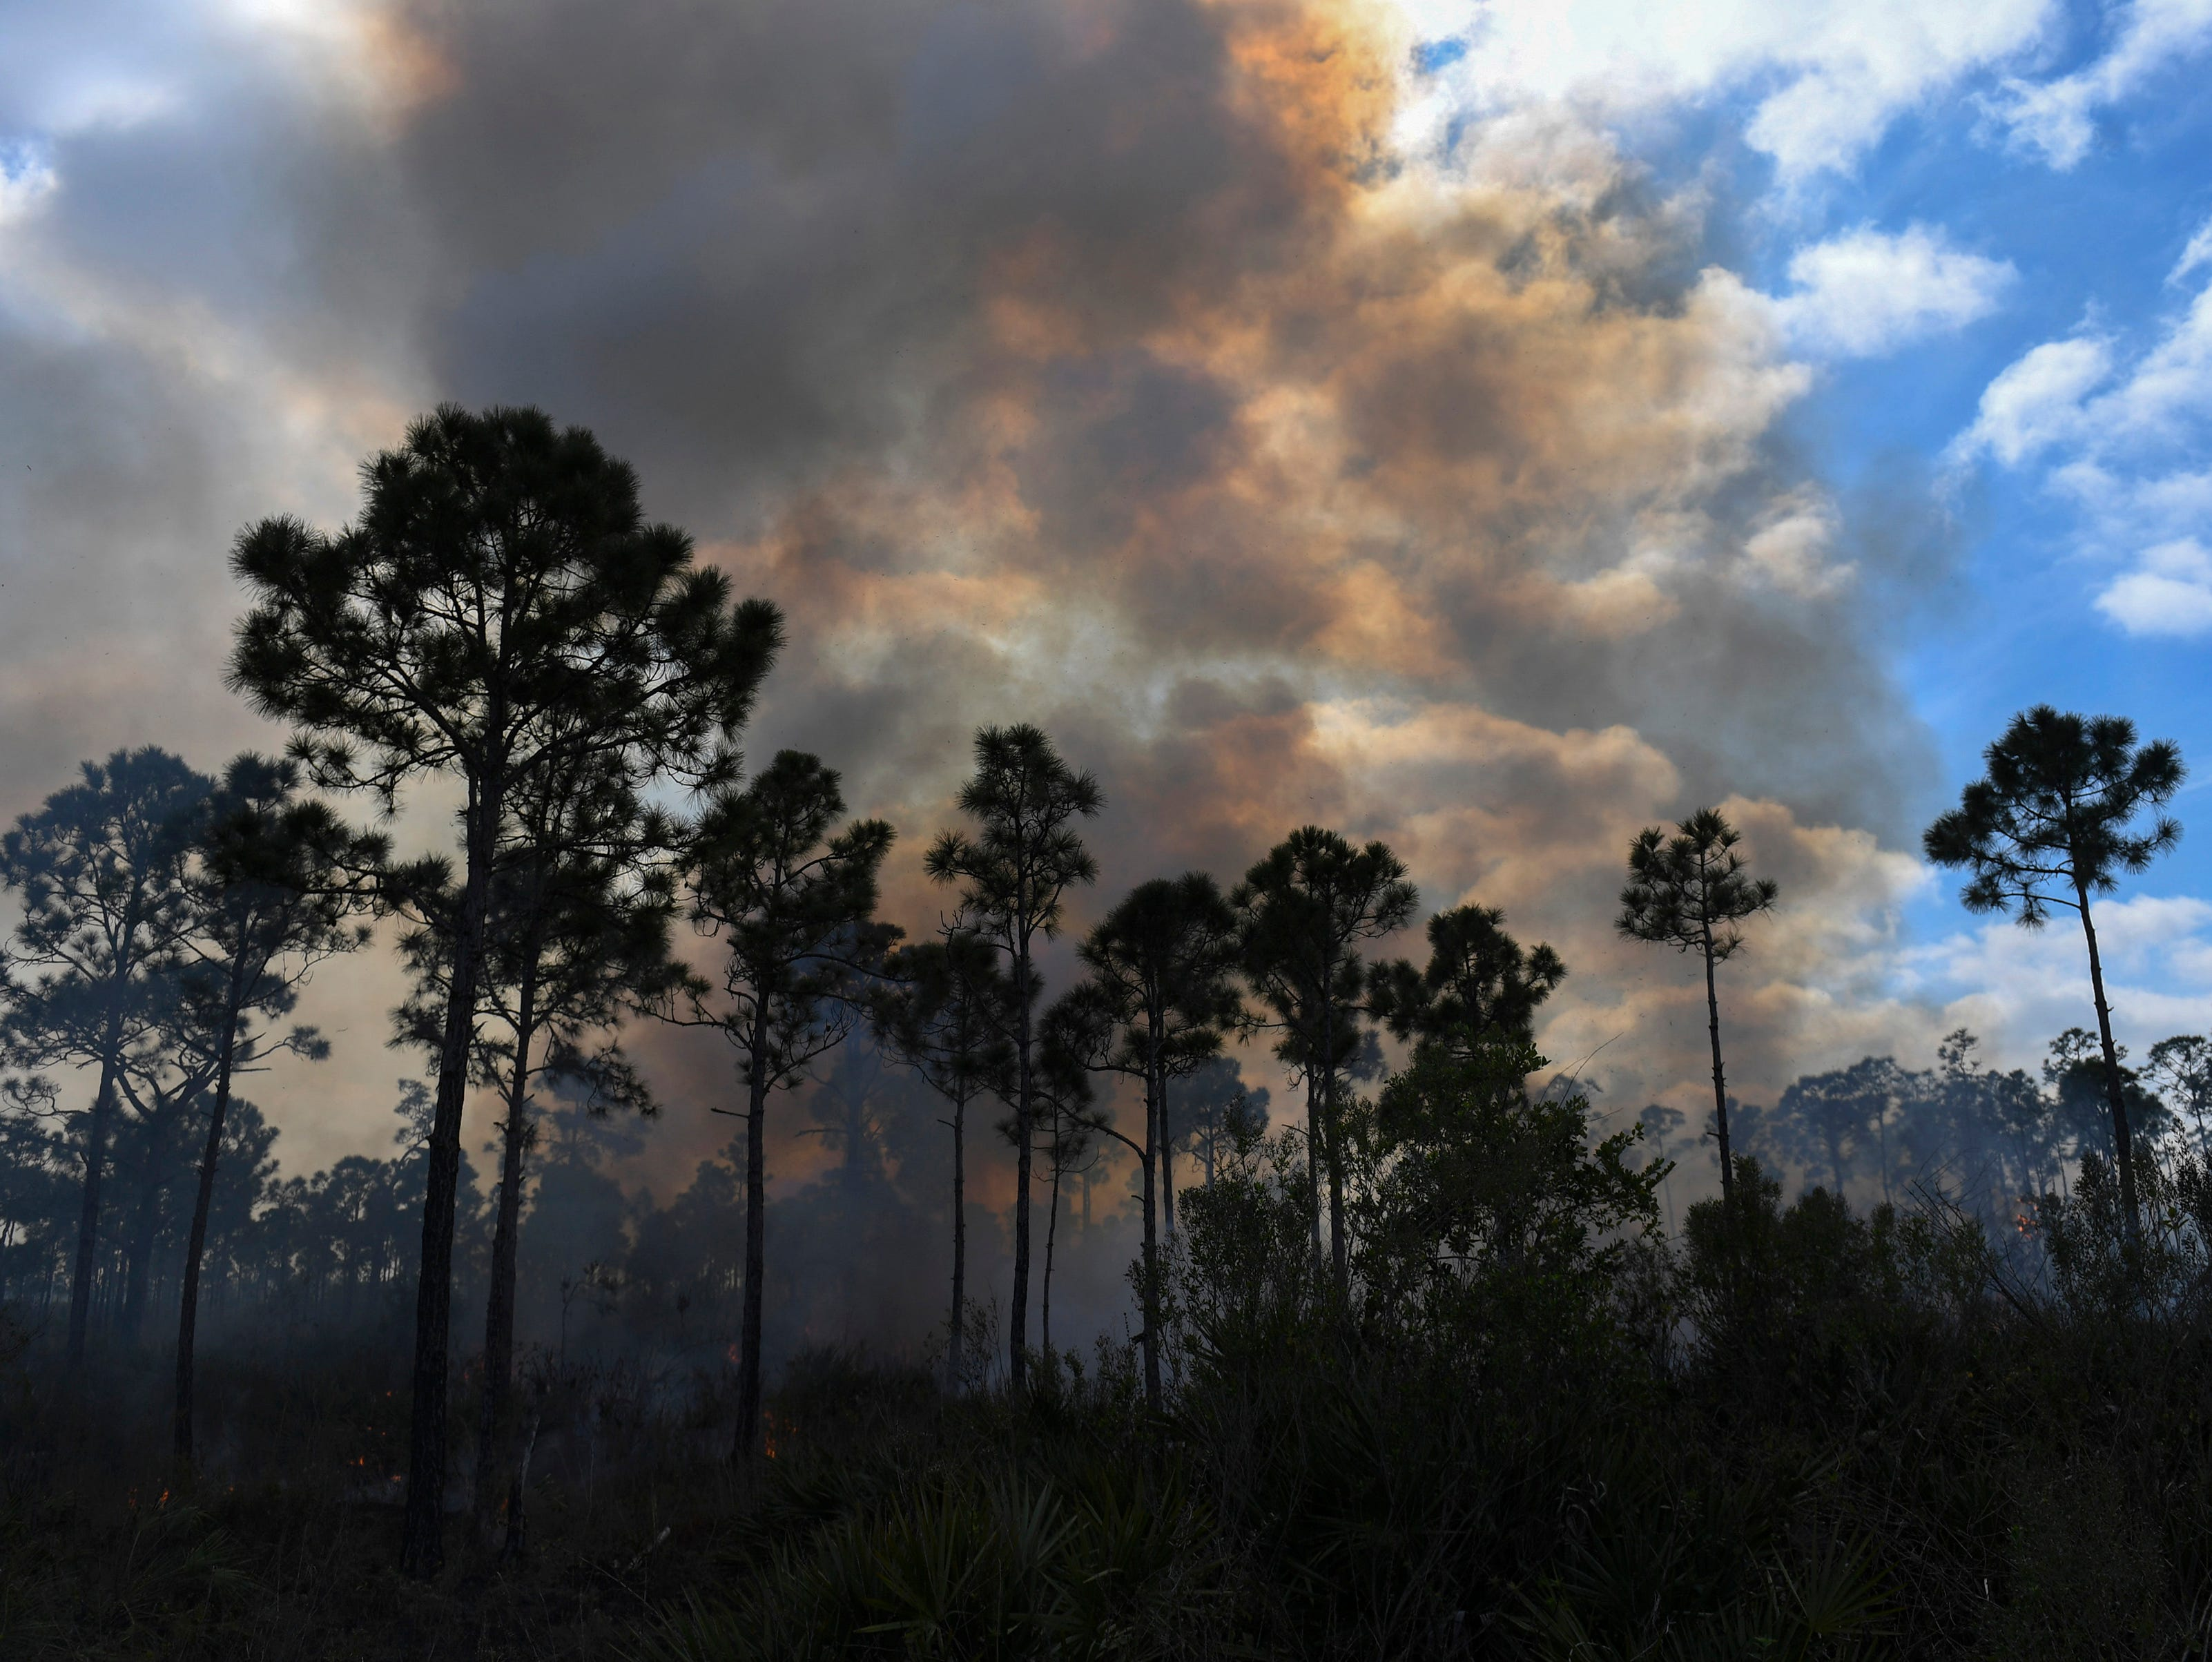 Smoke from a prescribed burn at the Atlantic Ridge Preserve State Park ascends into the sky as approximately 180 acres are burned by the Florida Park Service to prevent the future risk of wildfire near homes on Monday, Feb. 4, 2019, in Hobe Sound.